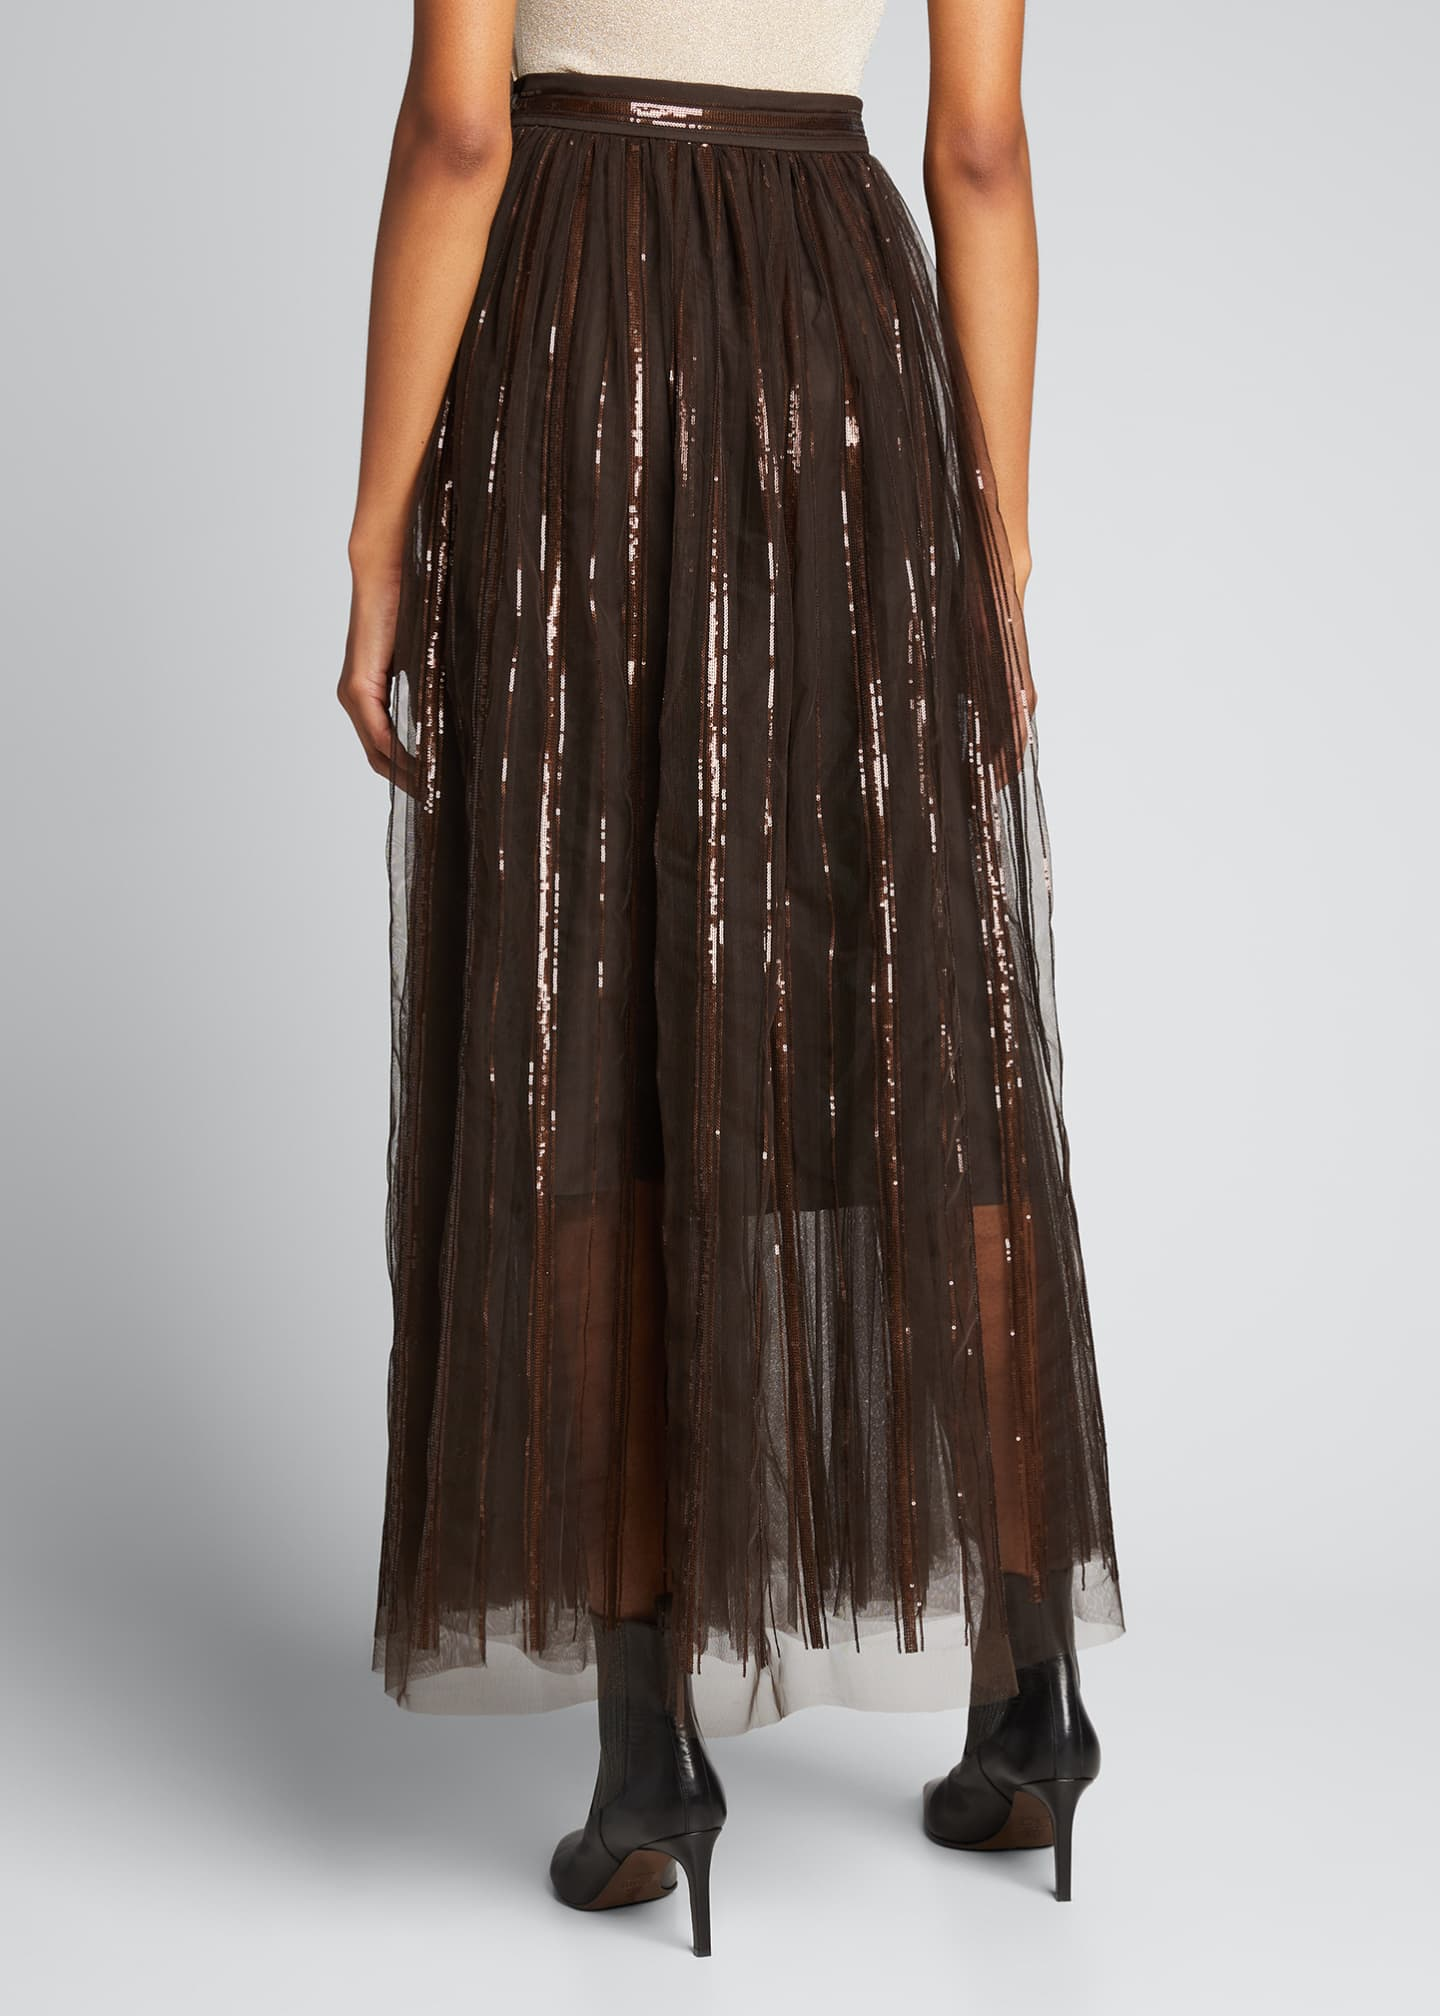 Image 2 of 5: Floral Embroidered Tulle Skirt with Leather Belt